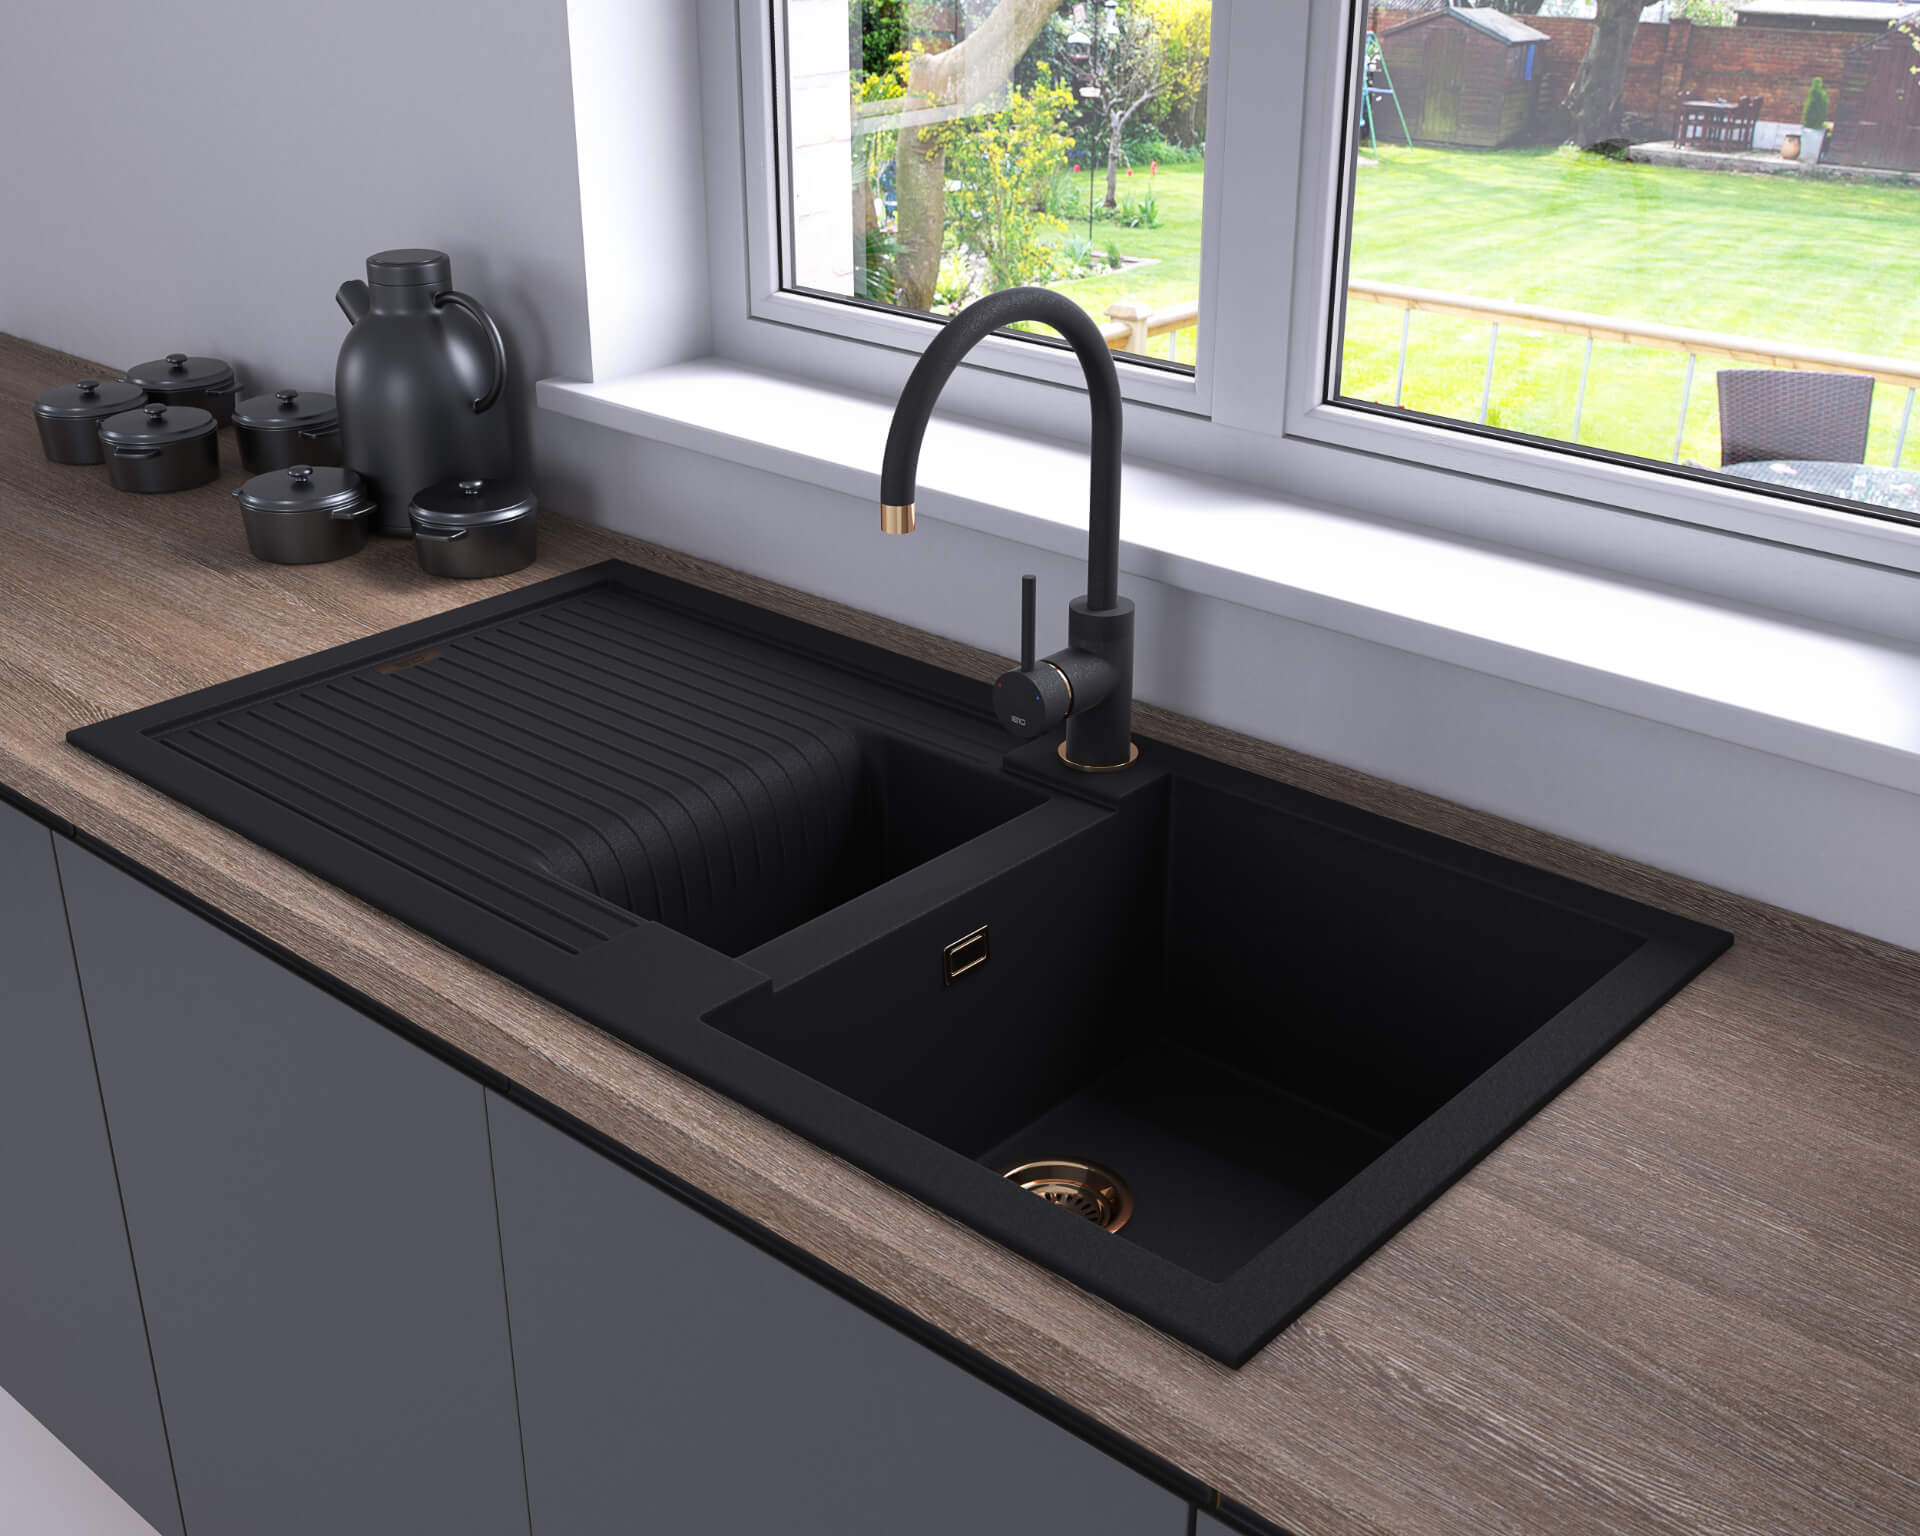 The 1810 Company Sink